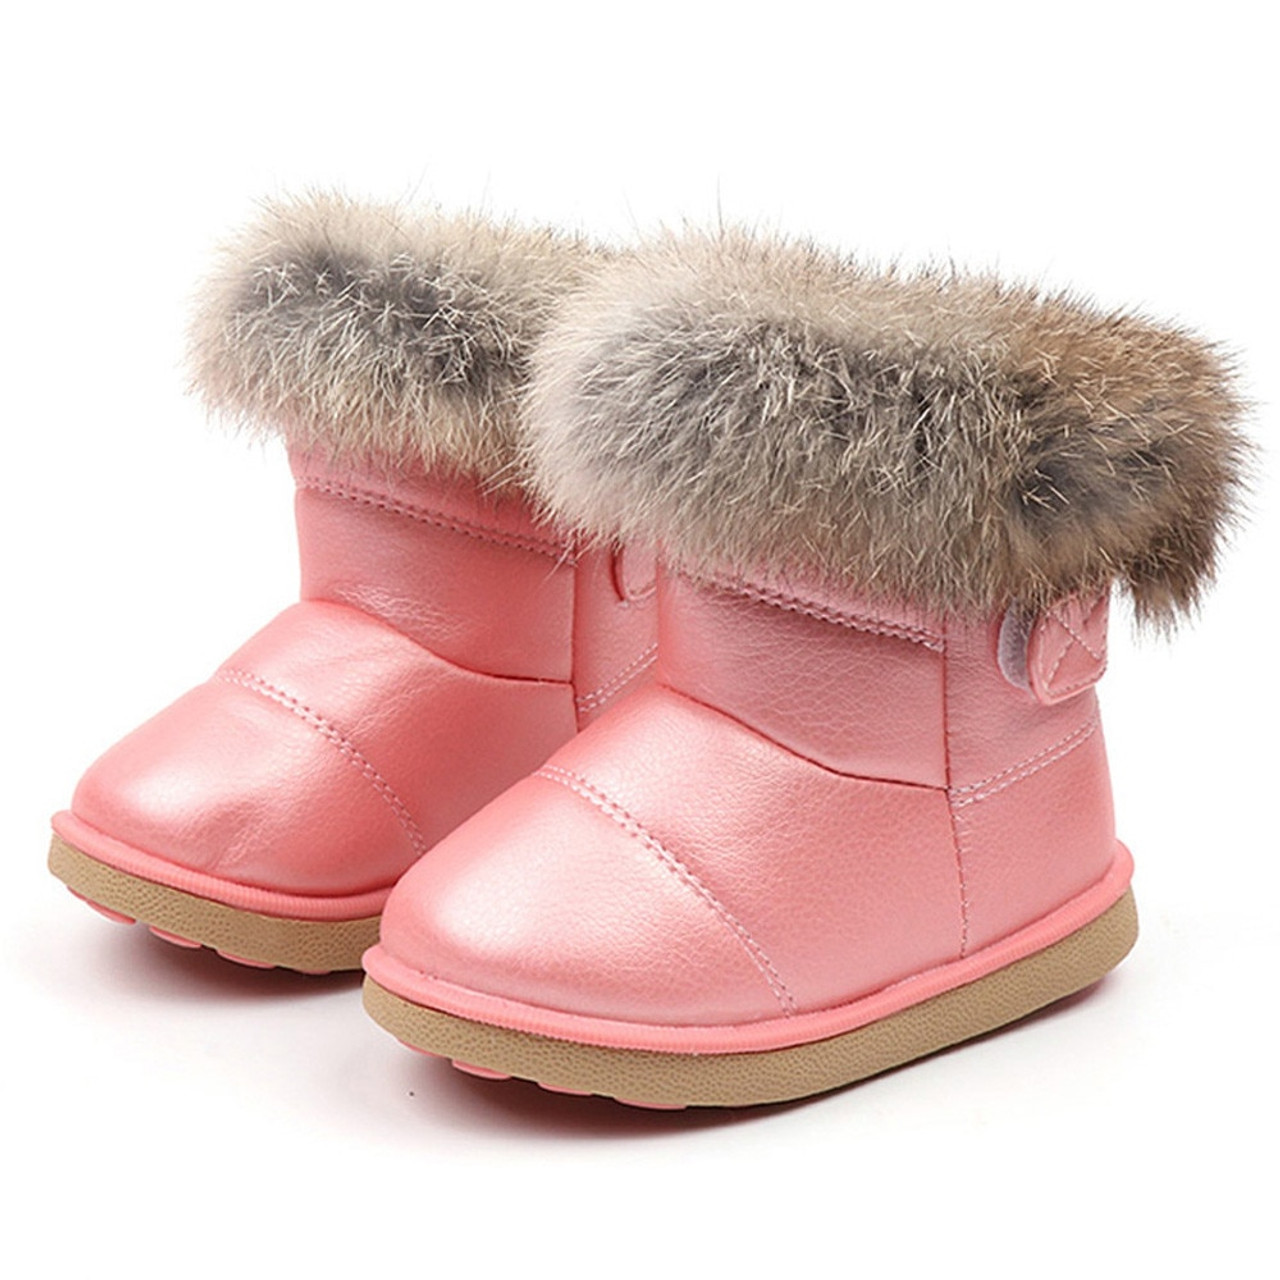 Kids Toddler Boys Girl Winter Warm Fur Snow Boots Leather Shoes Zipped Moccasins